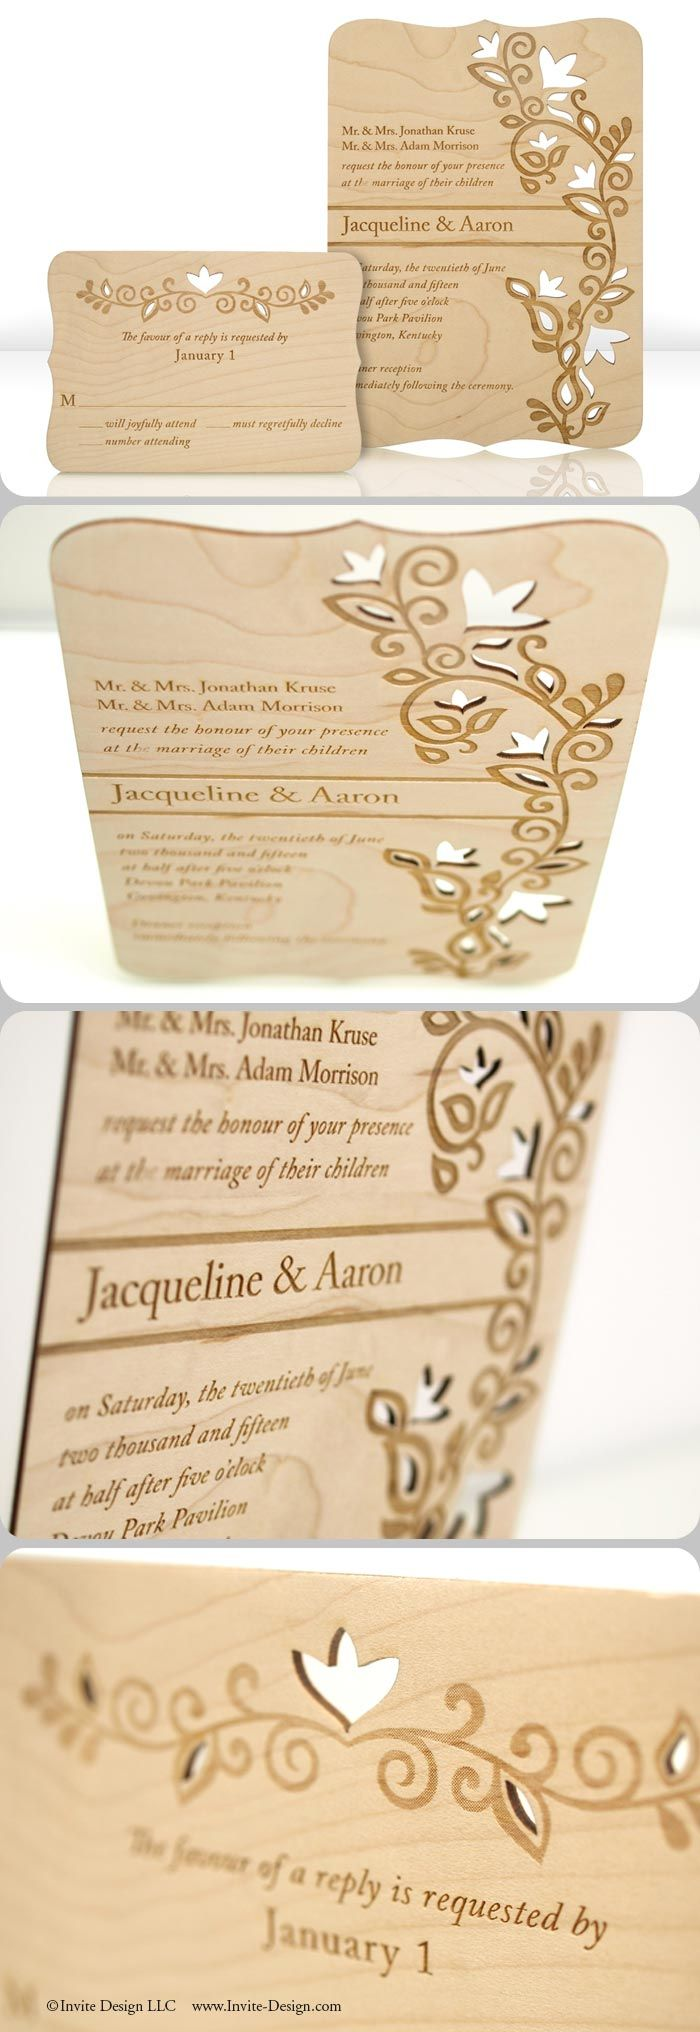 Laser cut wood wedding invitations. http://www.invite-design.com/#!product/prd12/4250339495/perennial-invitation-with-rsvp